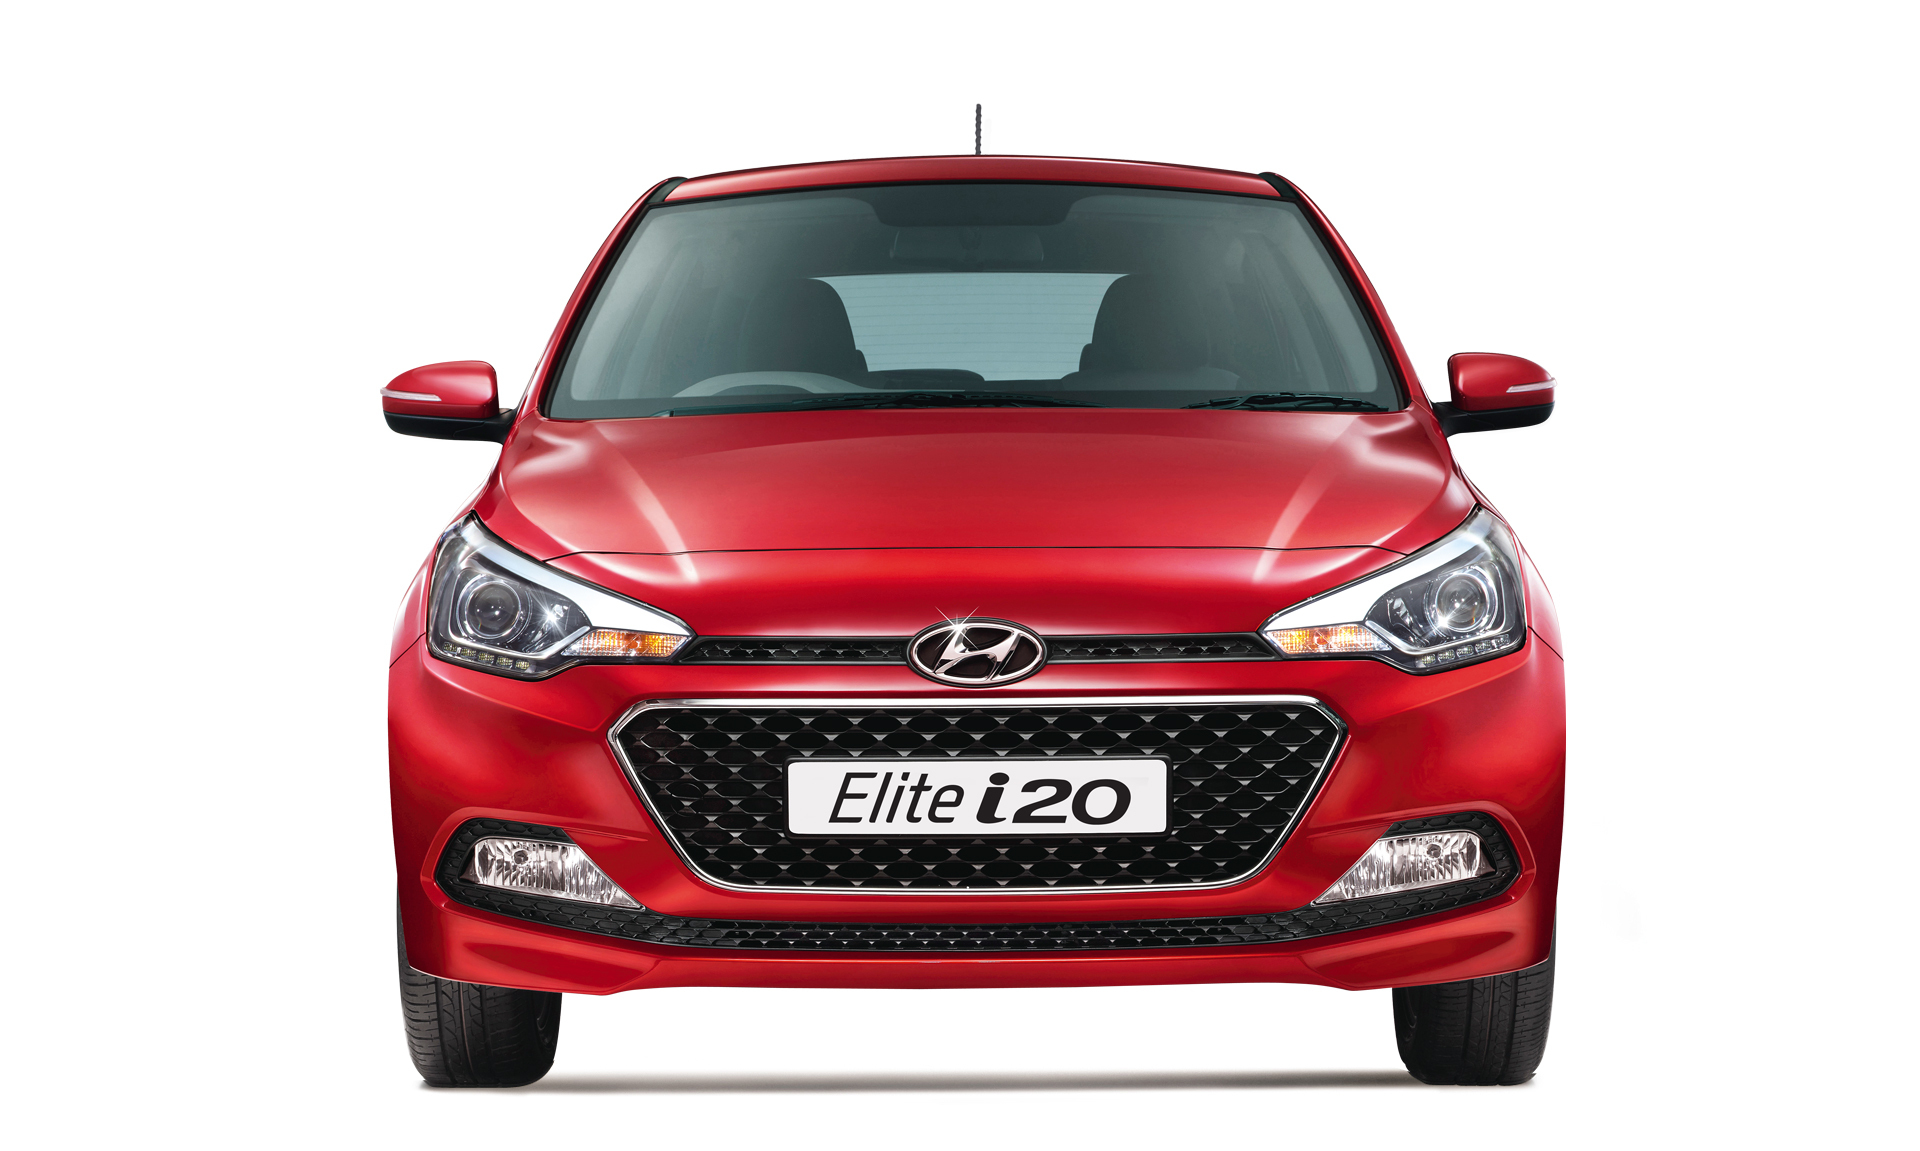 Hyundai Updates Elite I20 With Projector Headlights And